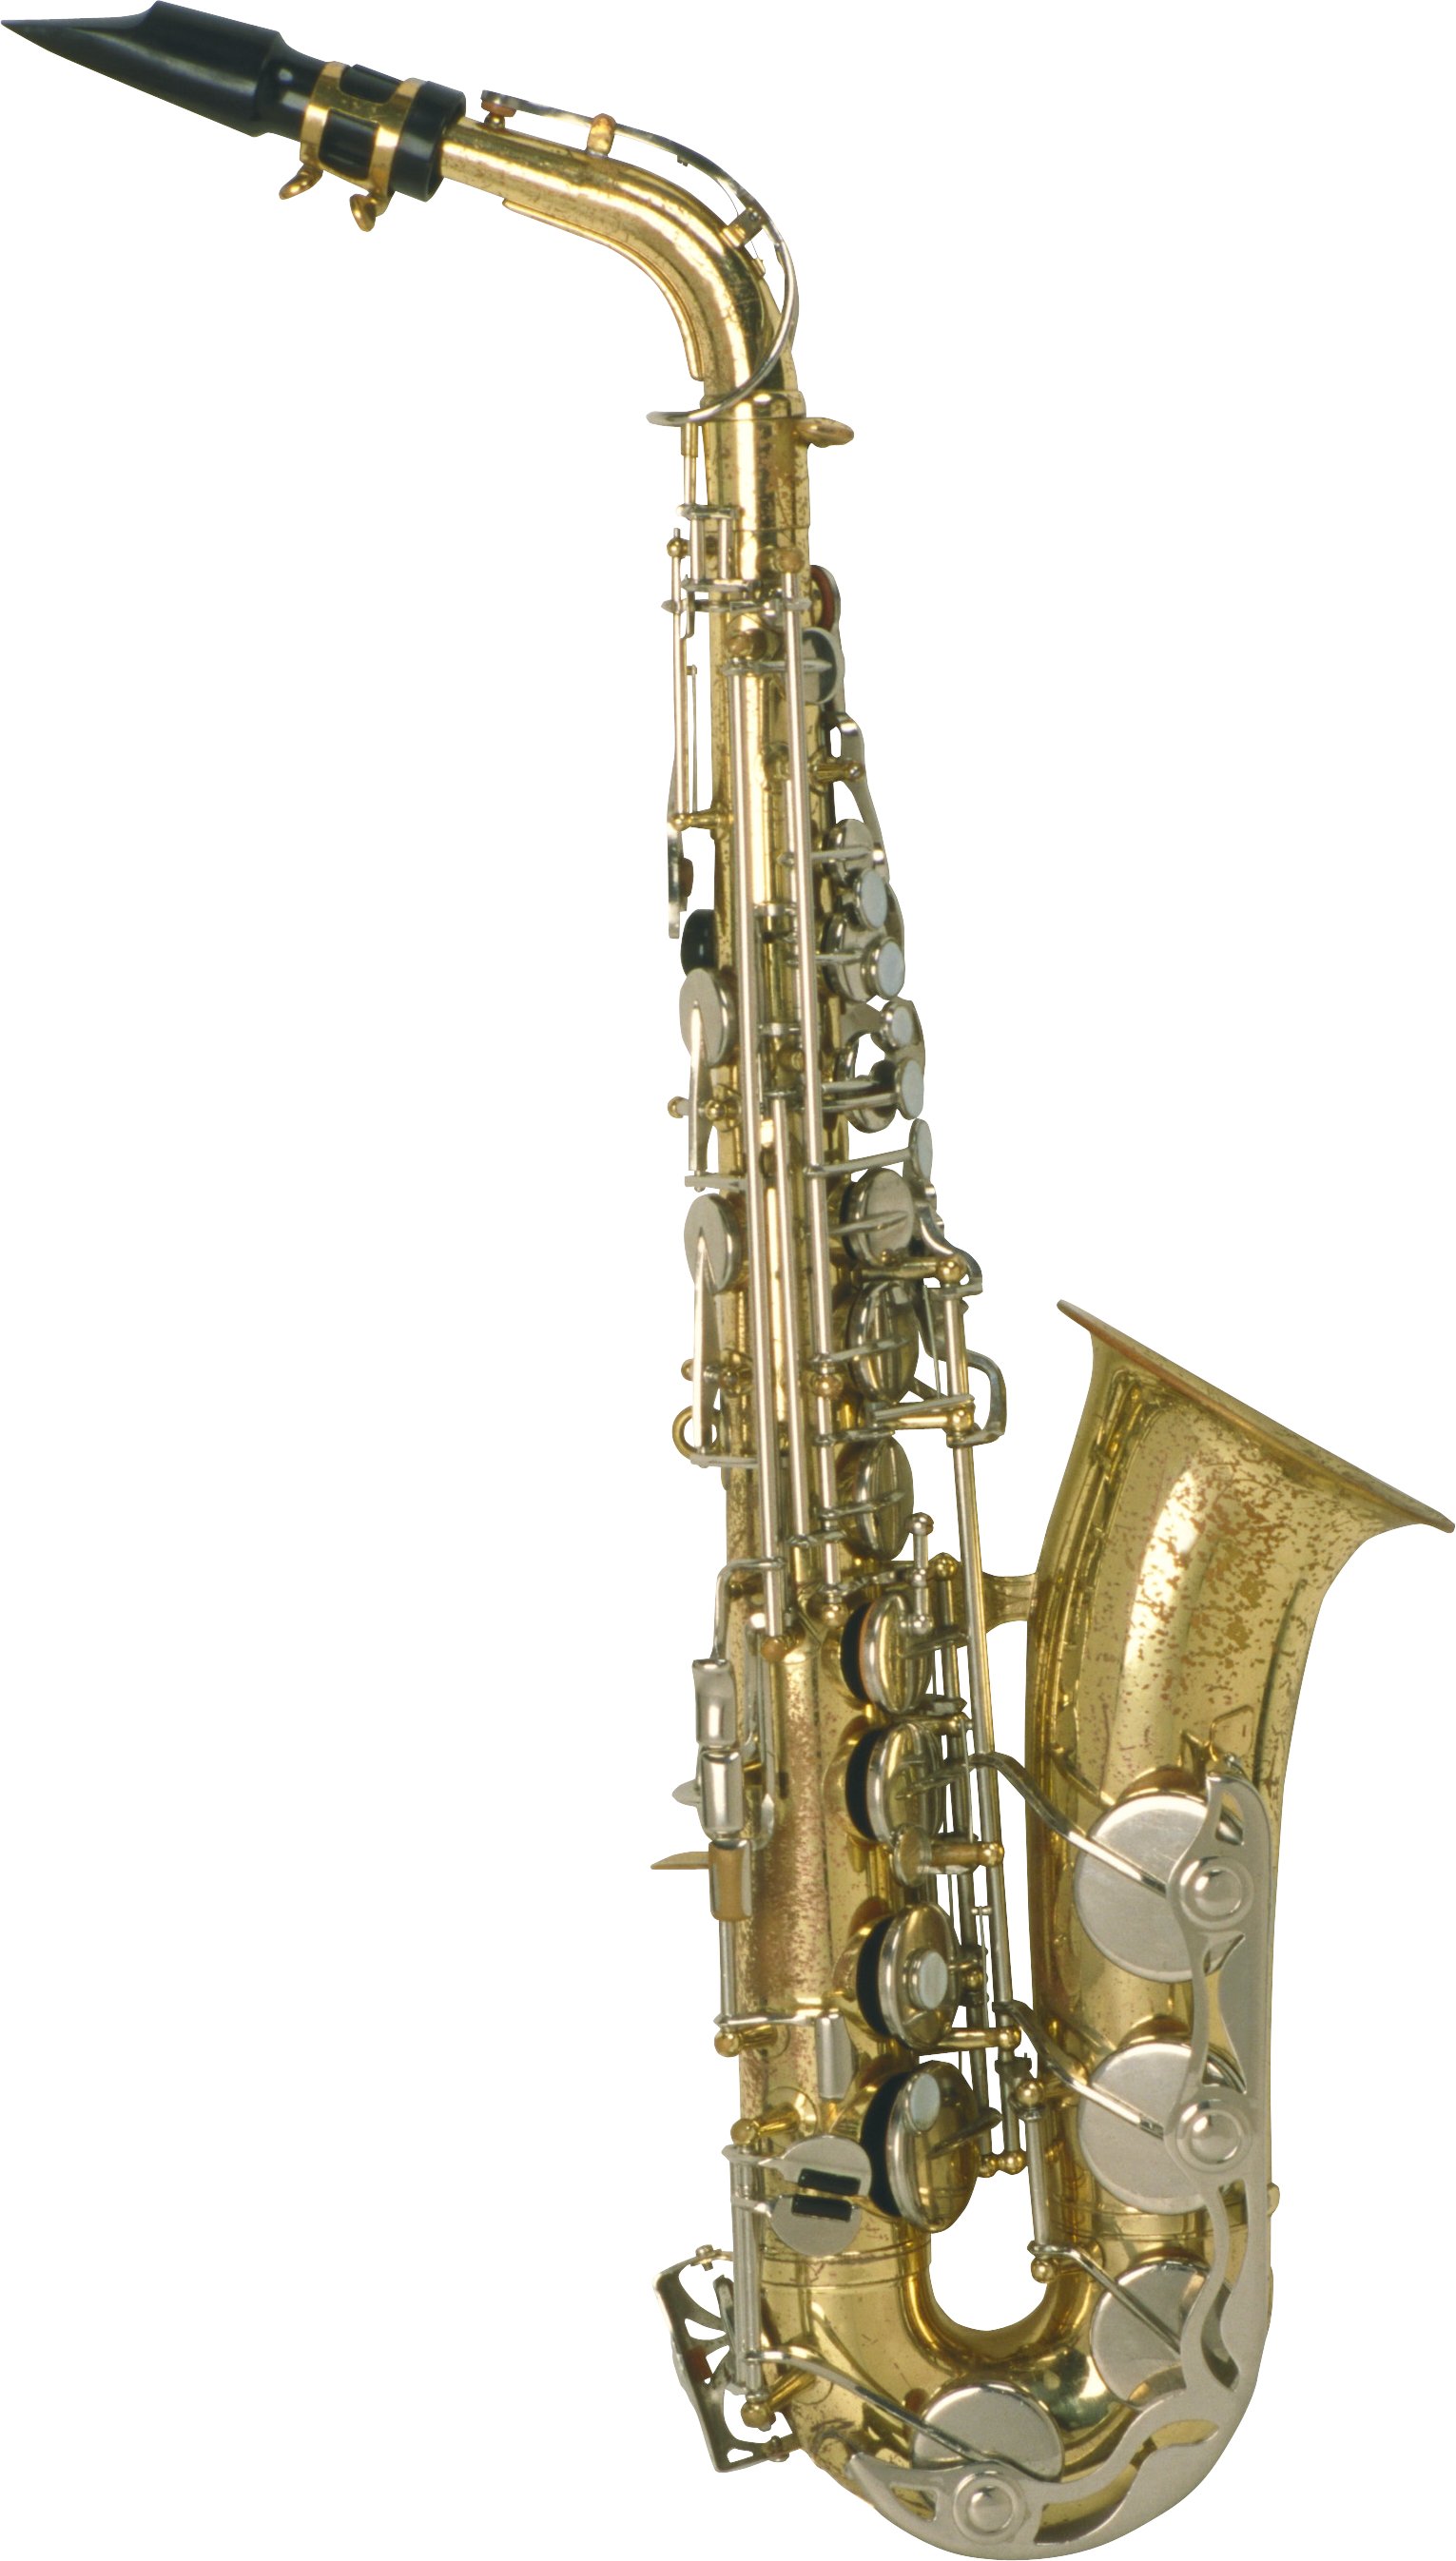 stock Transparent background free on. Gold clipart saxophone